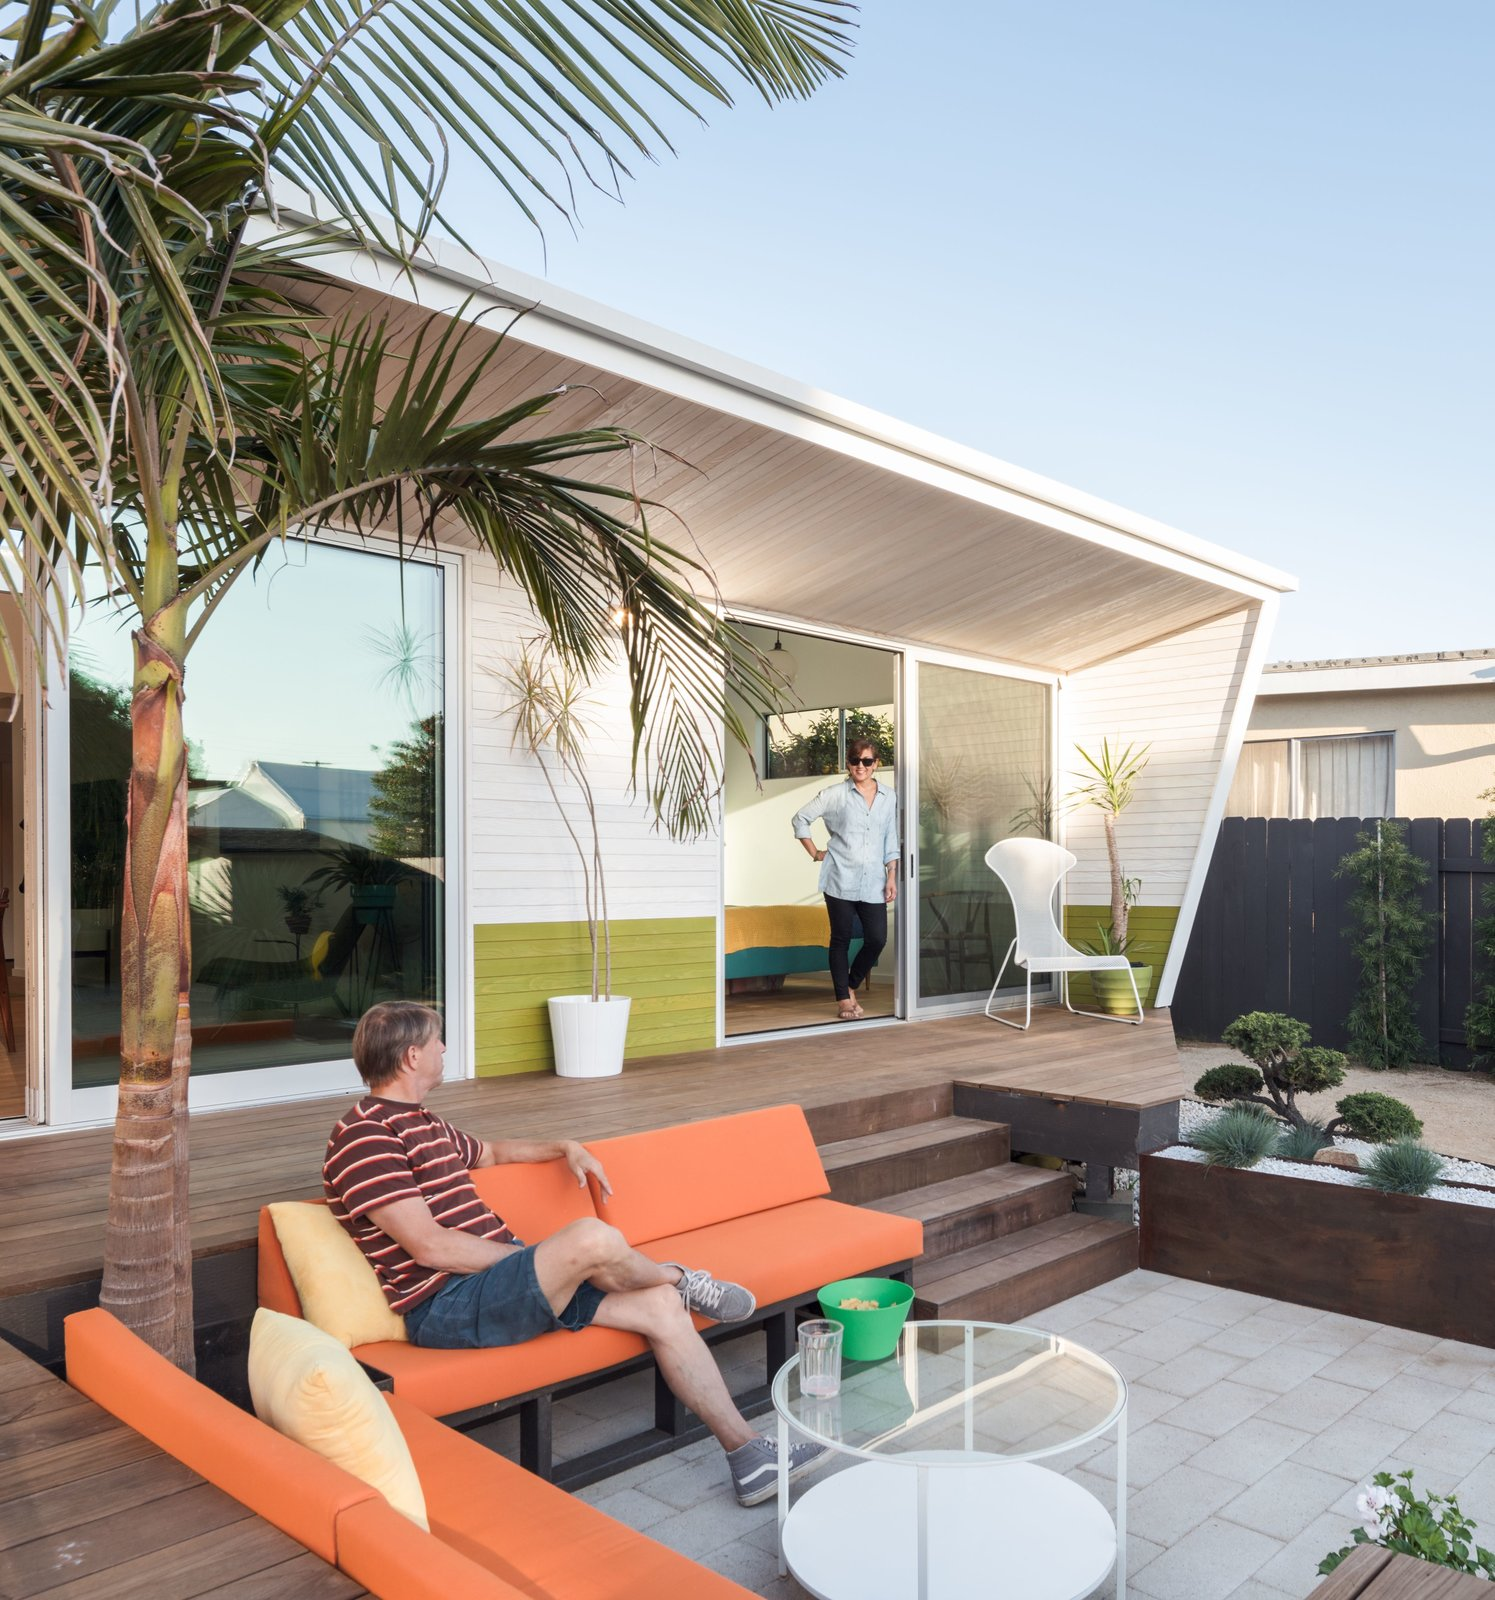 Outdoor, Back Yard, Trees, Raised Planters, Wood Patio, Porch, Deck, Vertical Fences, Wall, and Wood Fences, Wall corten steel planter + Bonsai garden  The Beach Lab by Surfside Projects